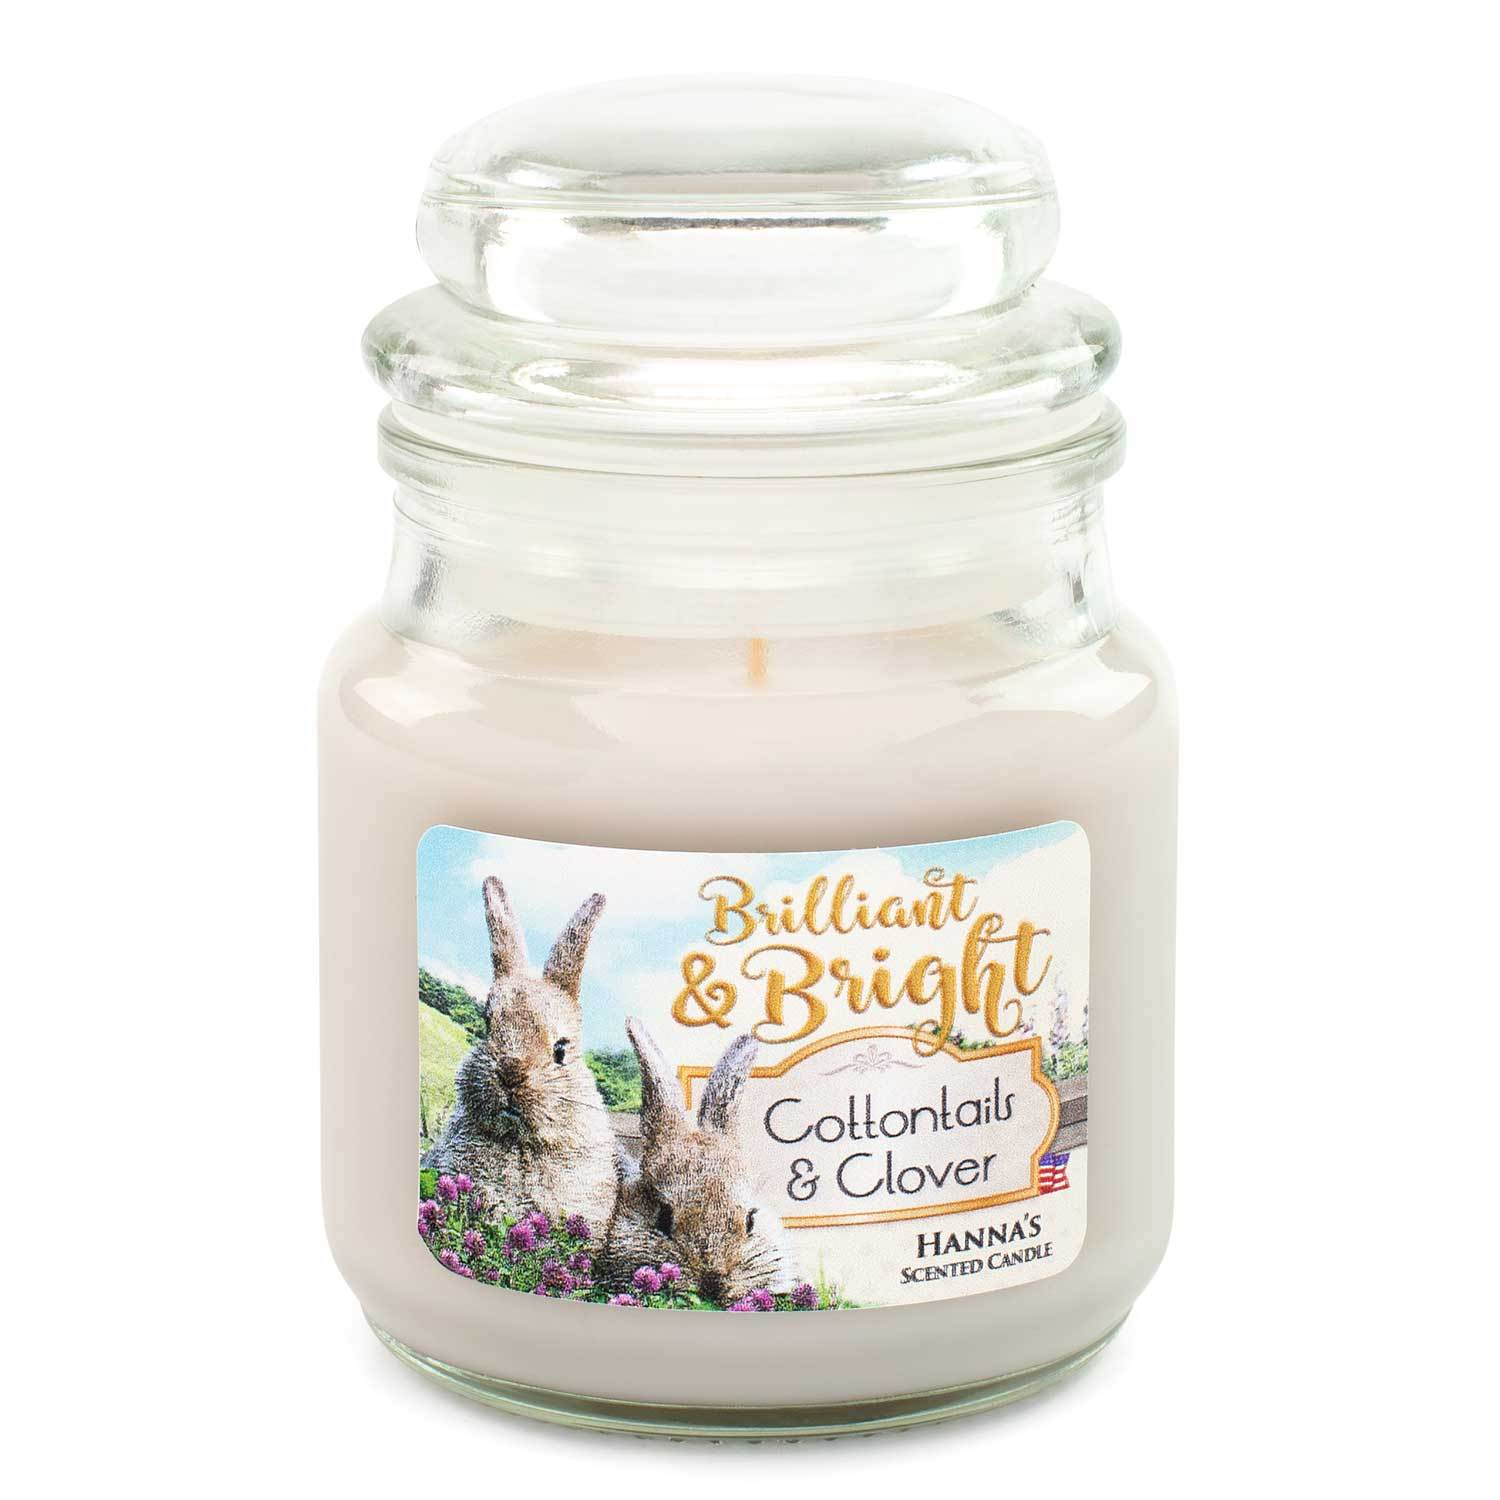 Cottontails & Clover Scented Mini Candle Candles Candlemart.com $ 2.99